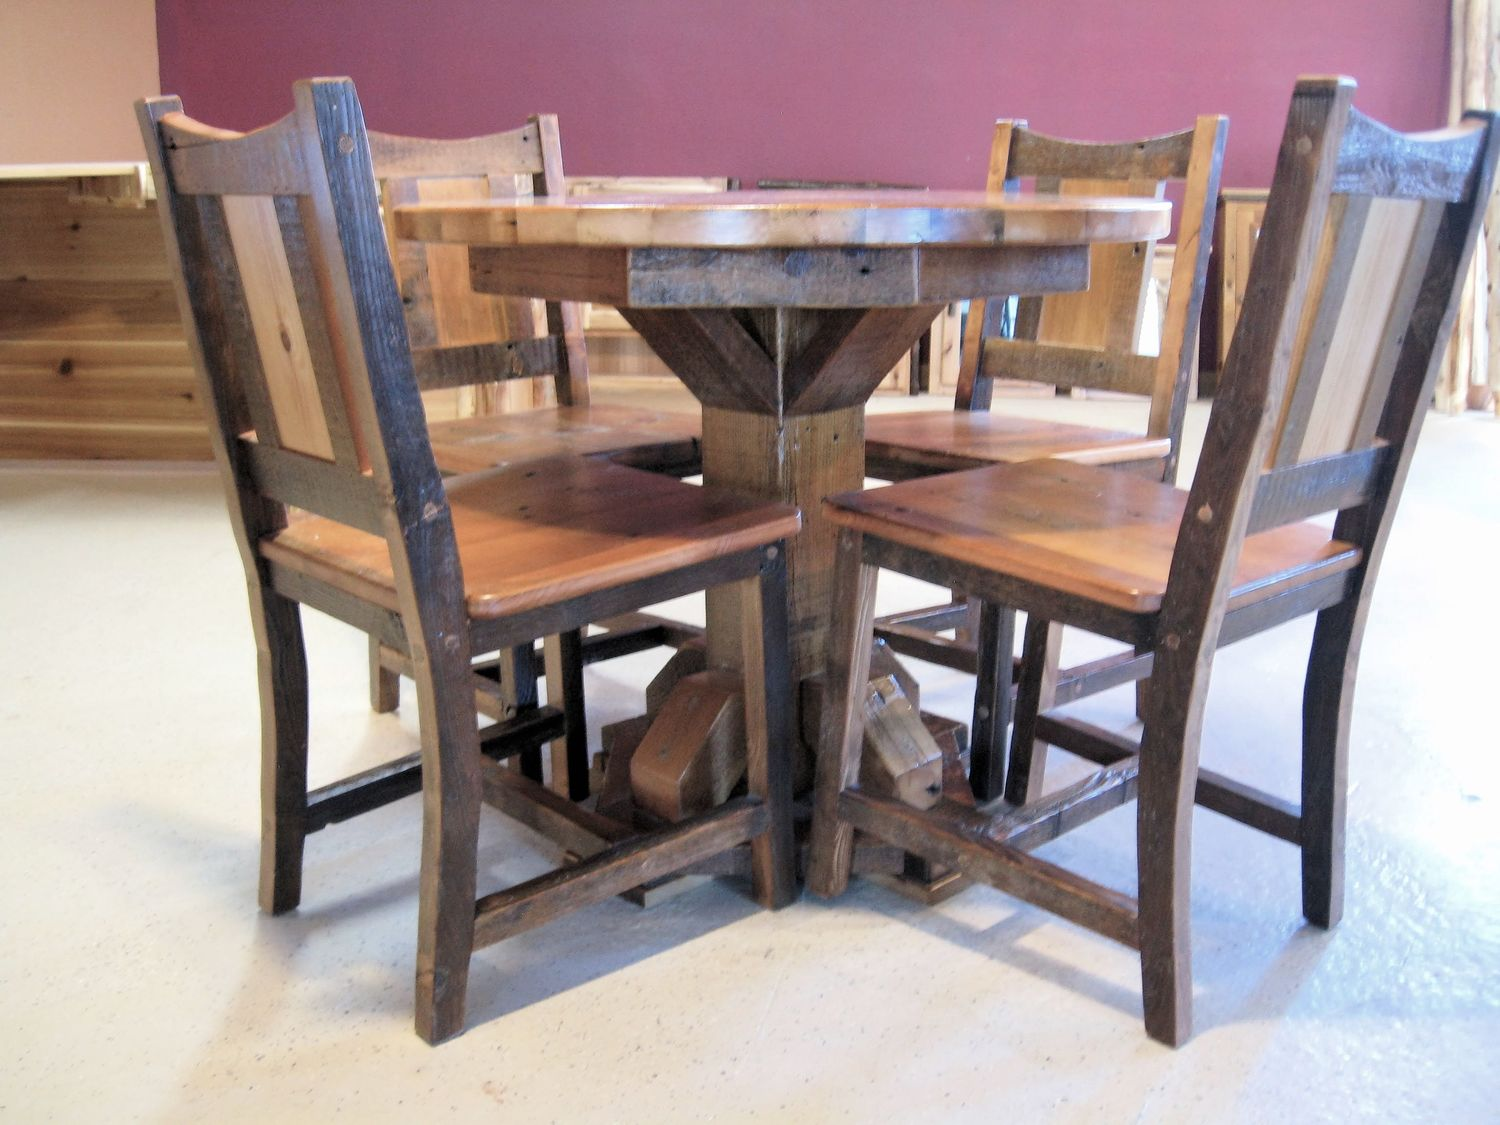 Barn Wood Table Chairs